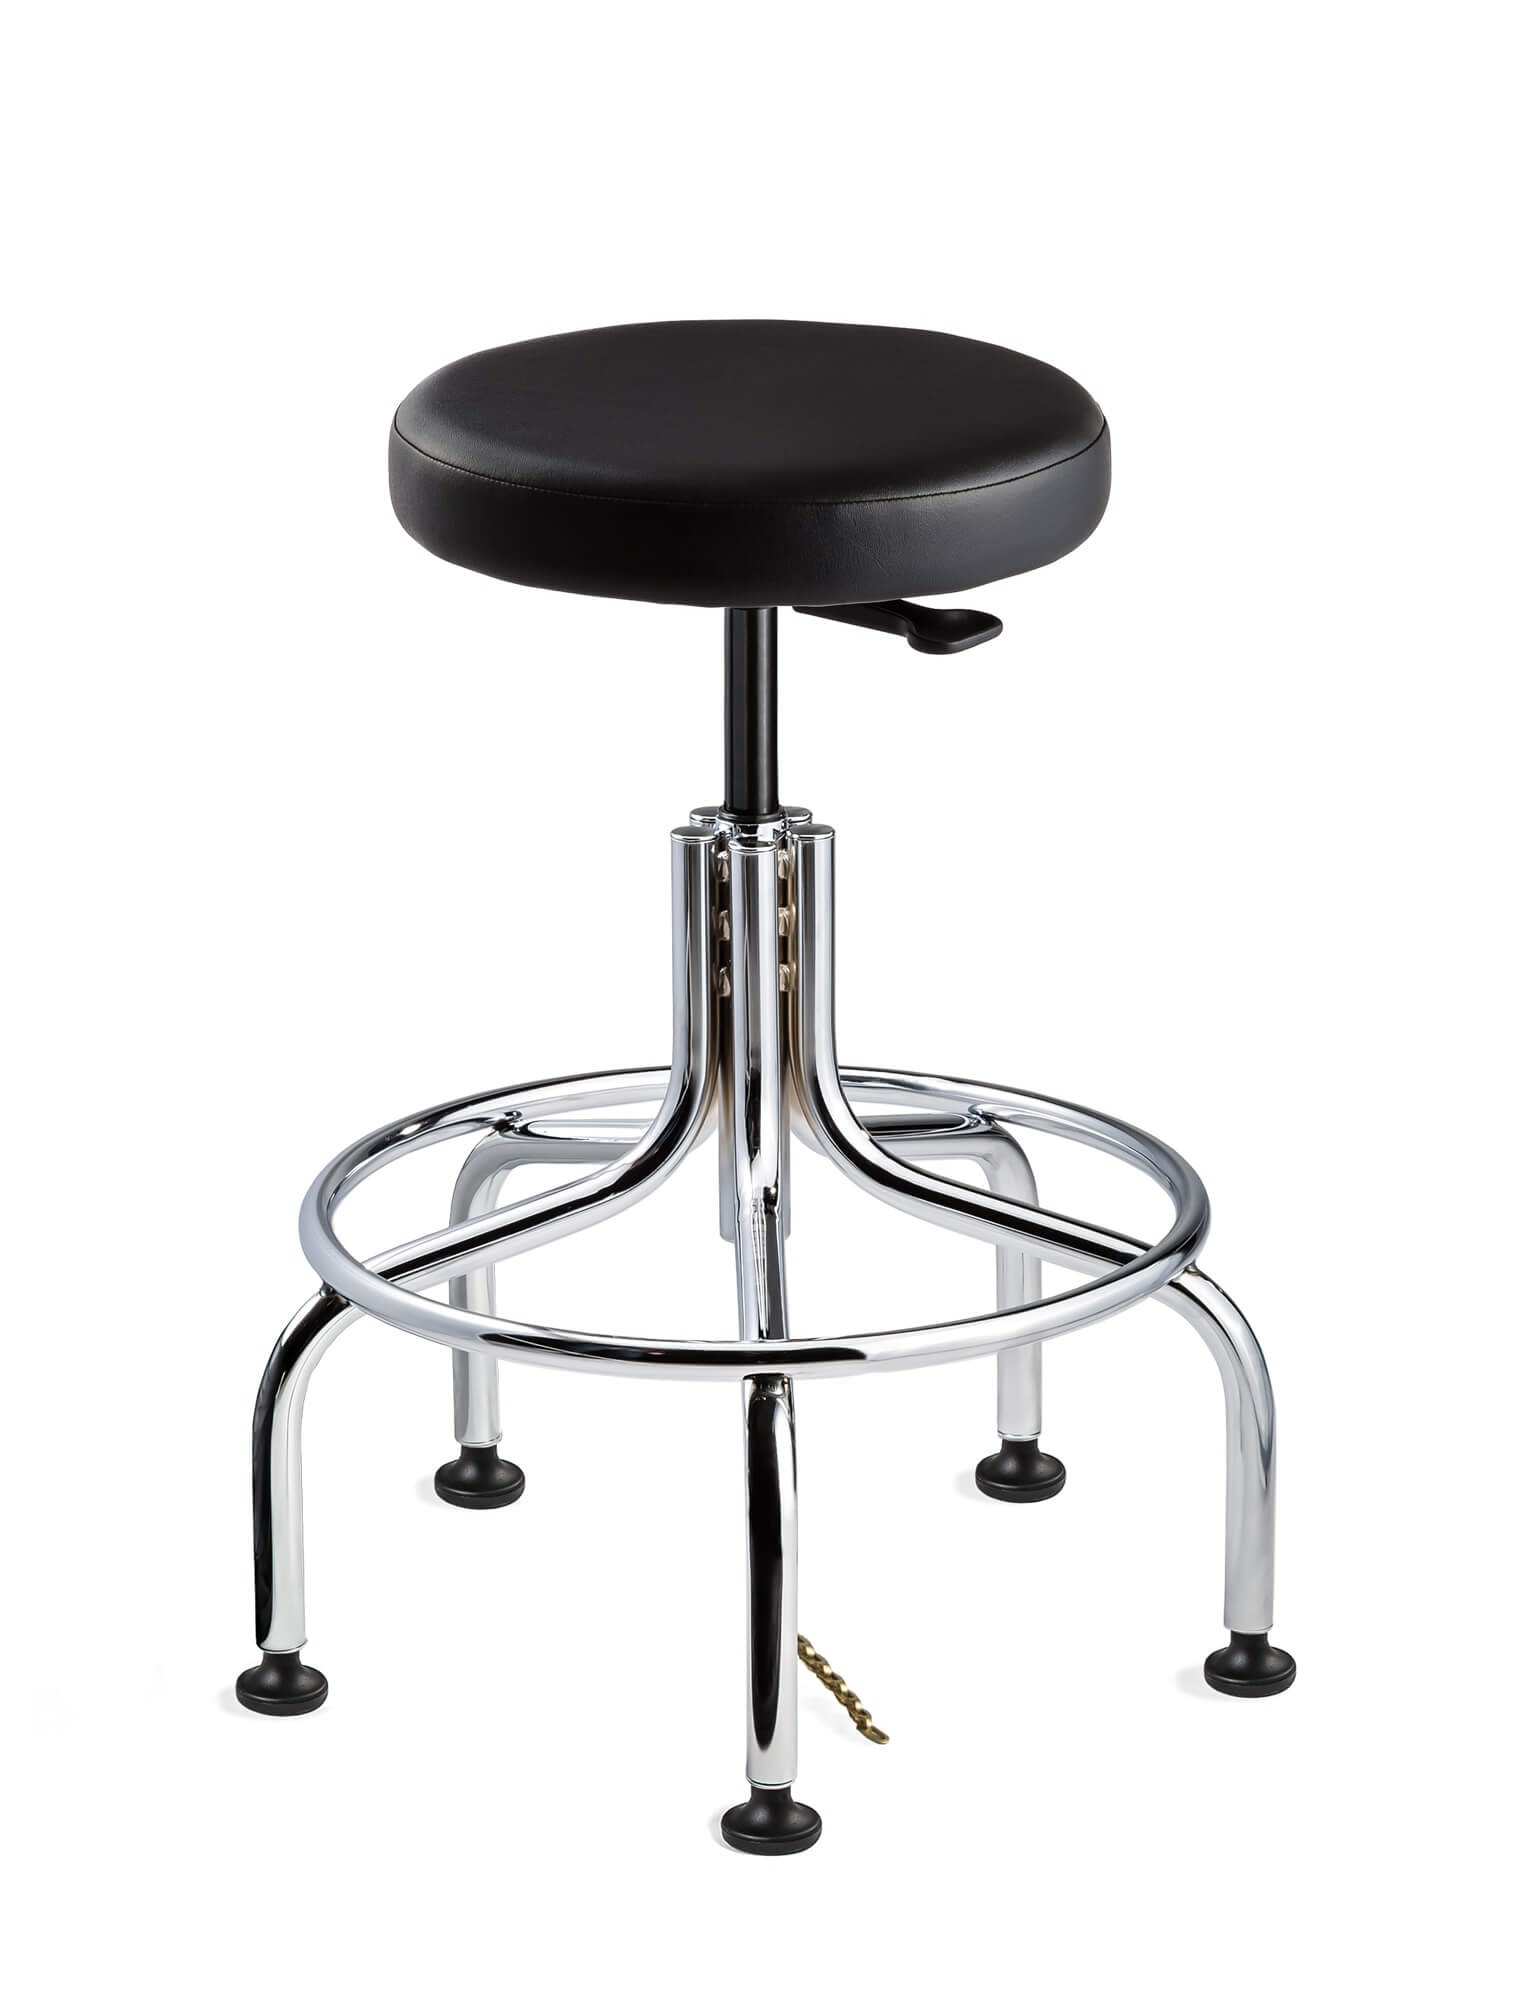 Versa Tall Height ESD Black Vinyl Backless Stool; Chrome Tubular Steel Base w/Welded Footring